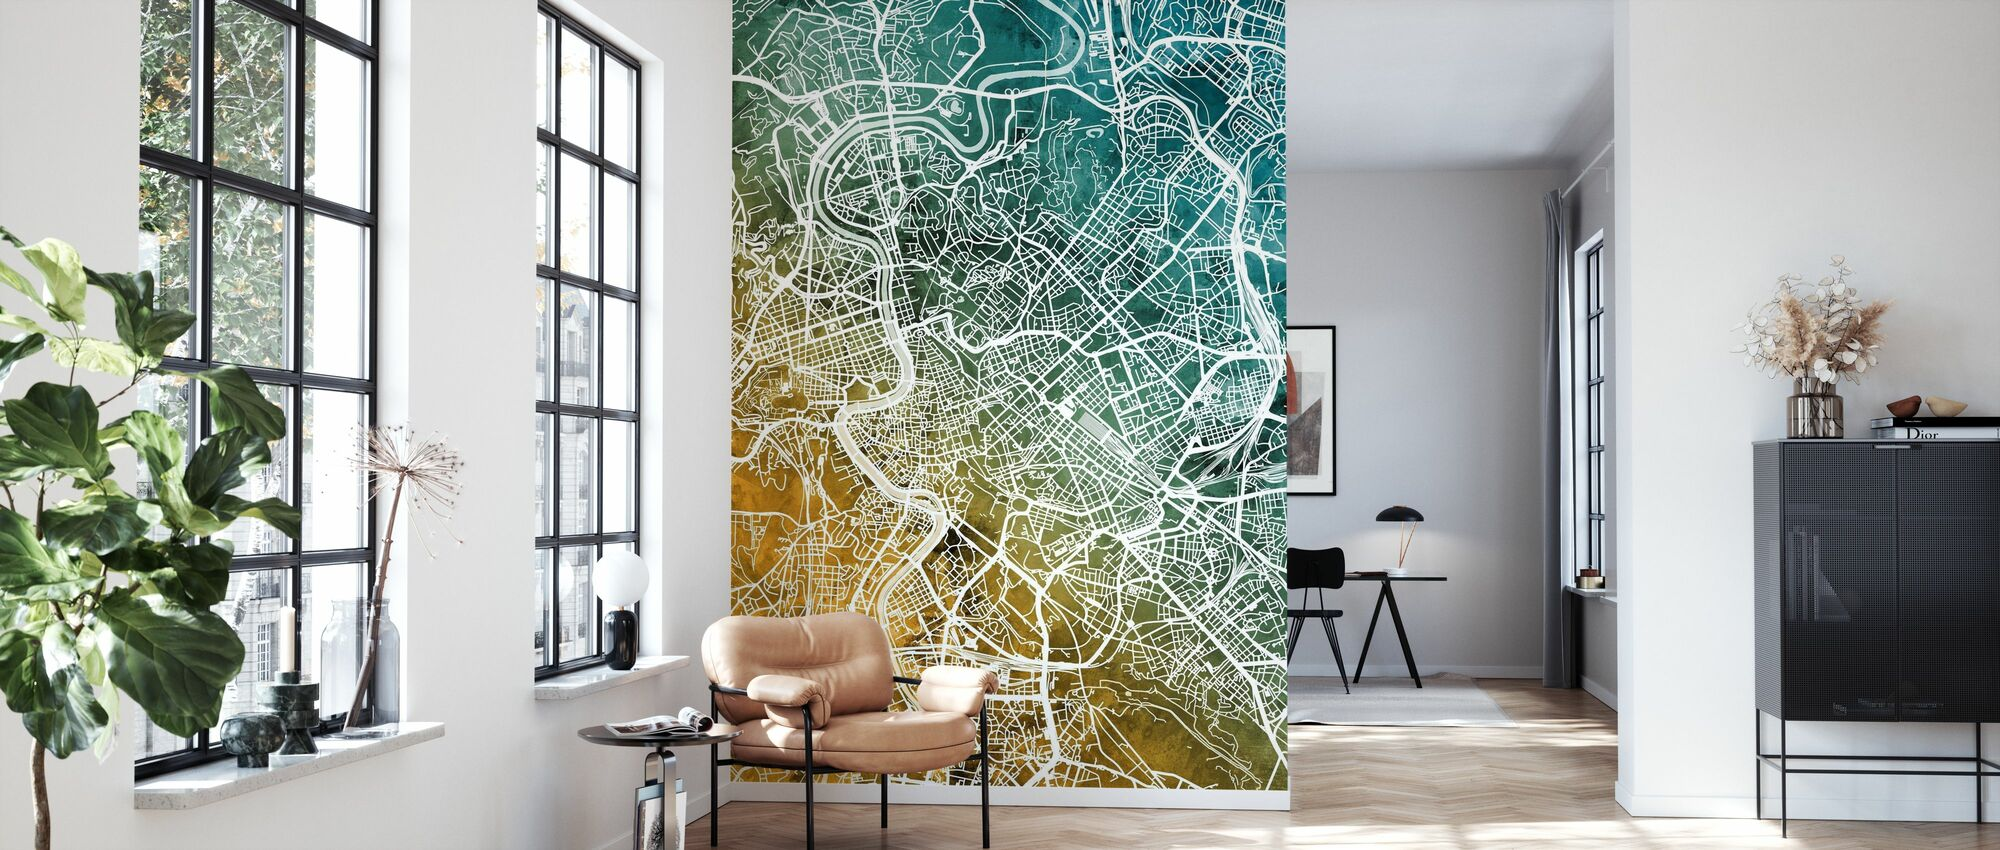 Rome Italy City Map - Wallpaper - Living Room